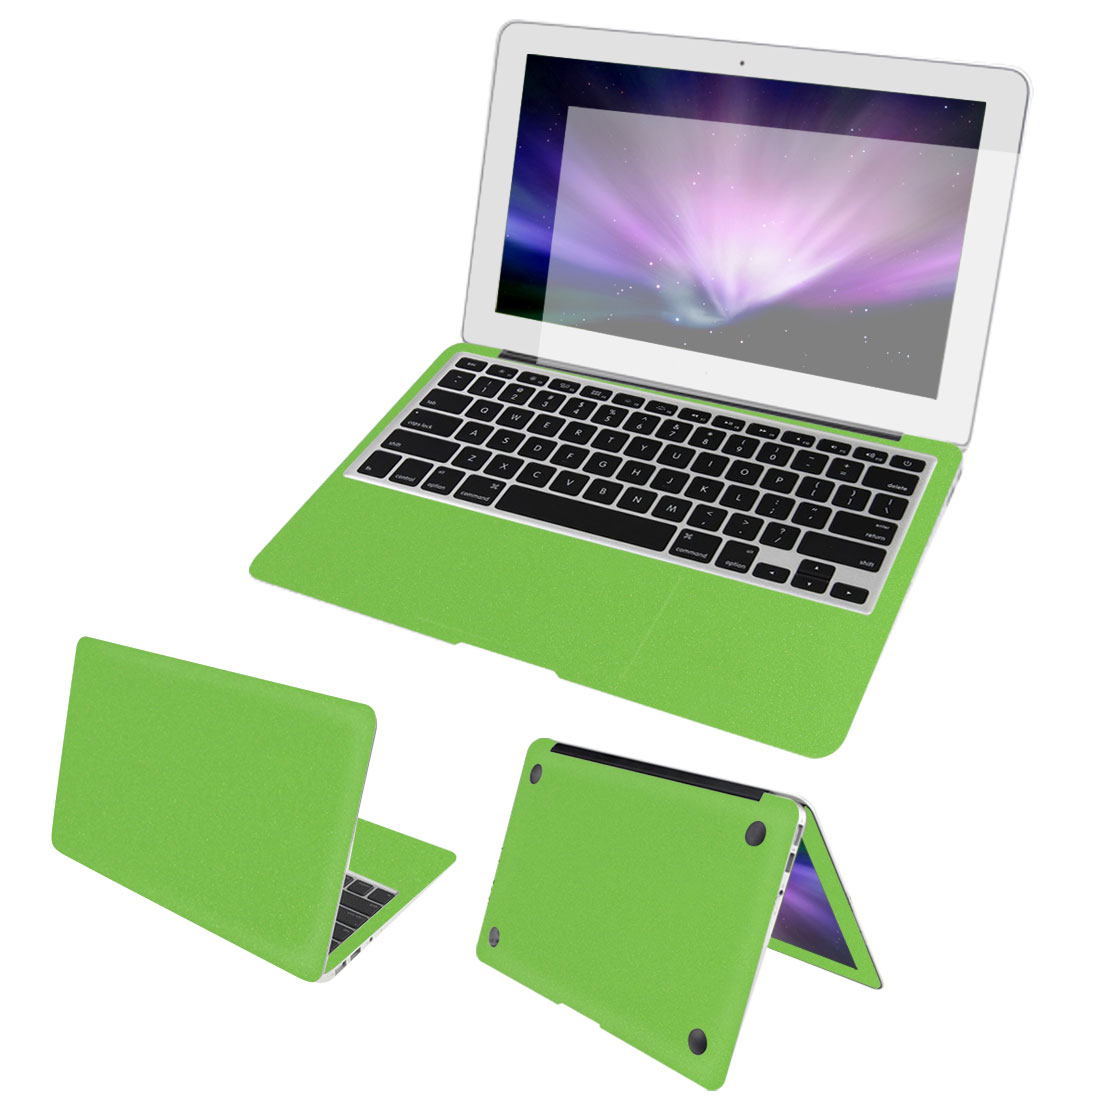 Green-Full-Body-Wrap-Protective-Decal-Skin-Cover-Screen-Film-for-Macbook-Air-13